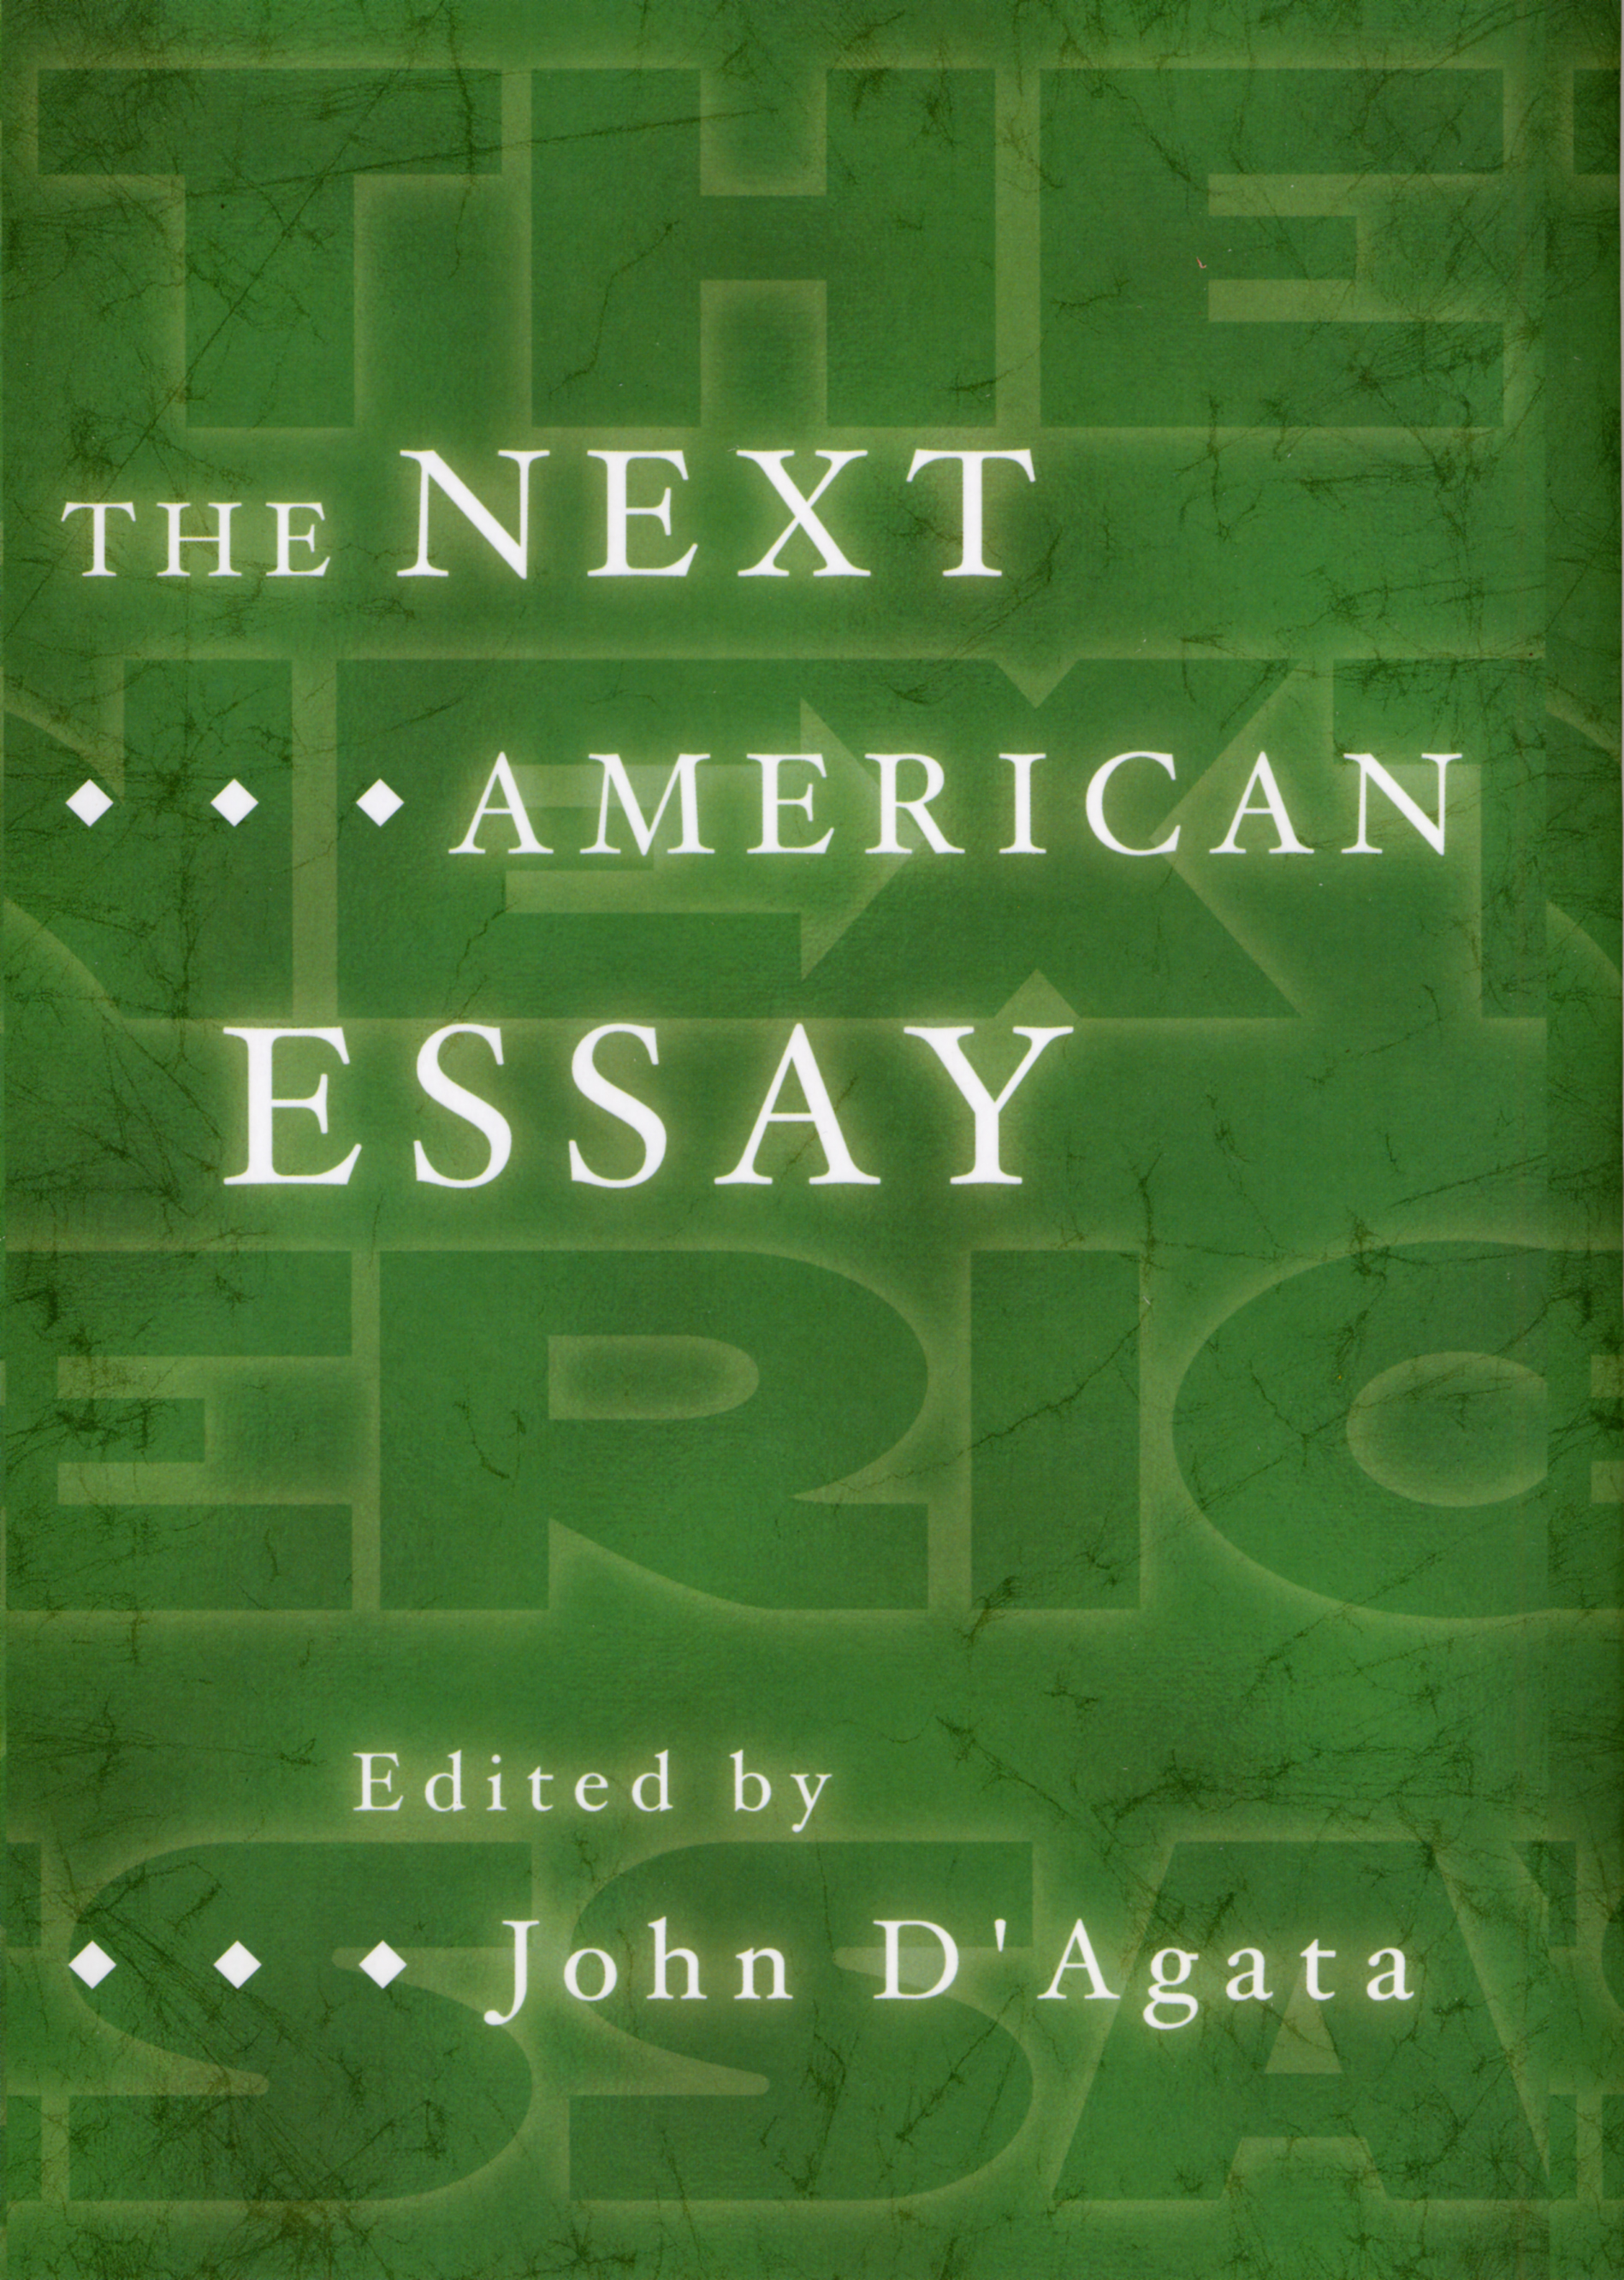 american university essay requirements A college essay is an important piece of a college application and an opportunity for students to show an admission committee what makes them a good candidate.